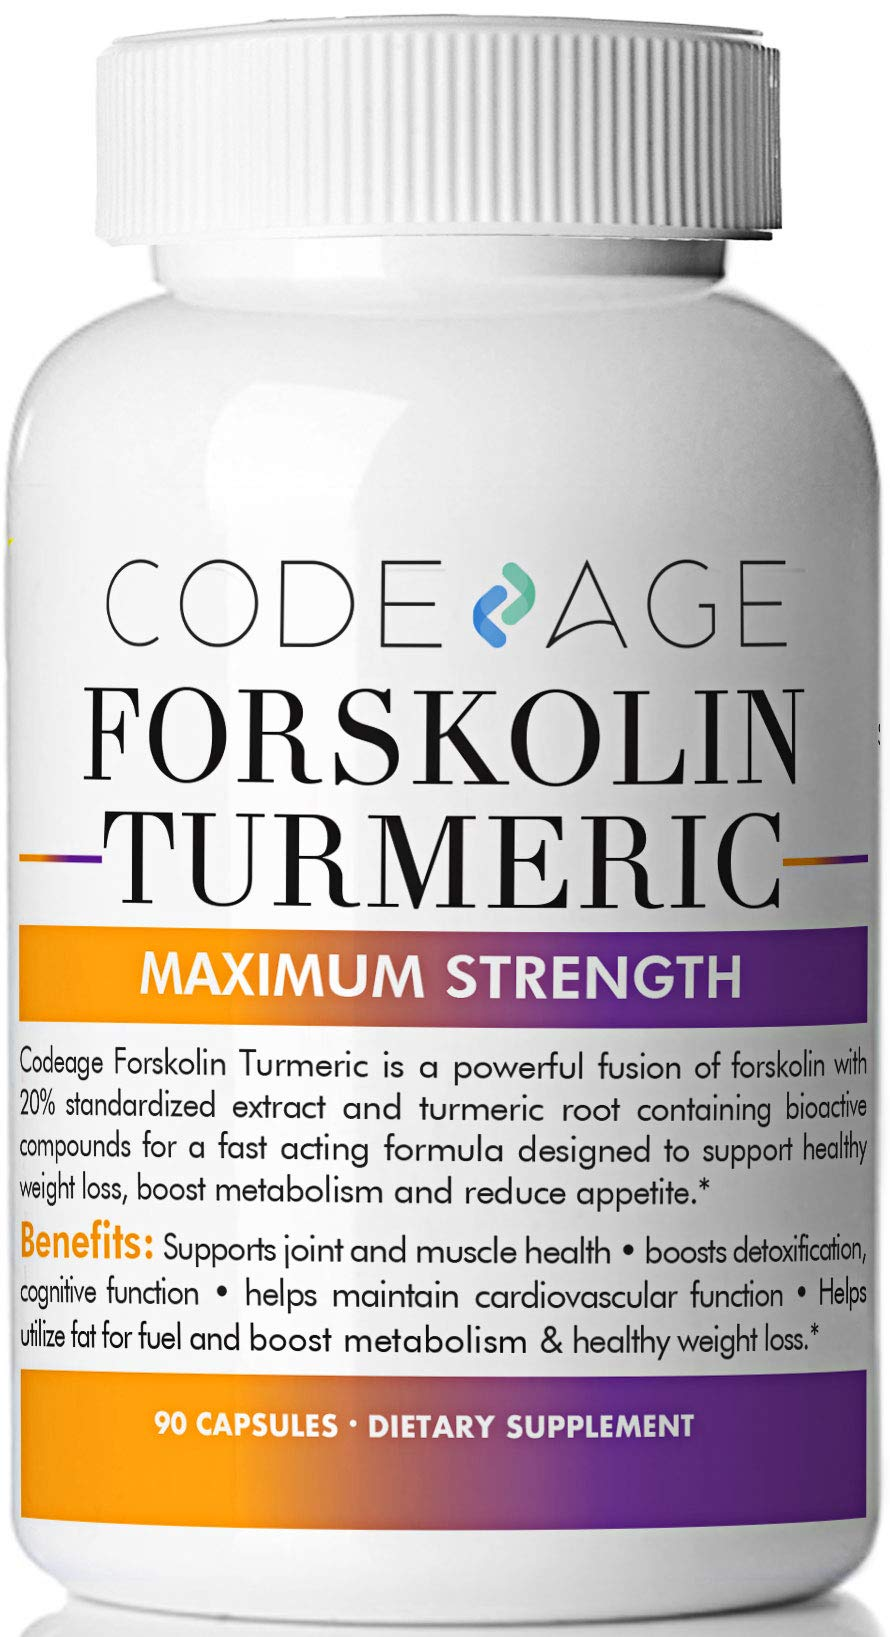 Codeage Turmeric Forskolin Formula for Men and Women Forskolin 20 Percent Standardized Extract and Turmeric Root 95 Percent, Coleus Forskohlii, 90 Capsules by Codeage